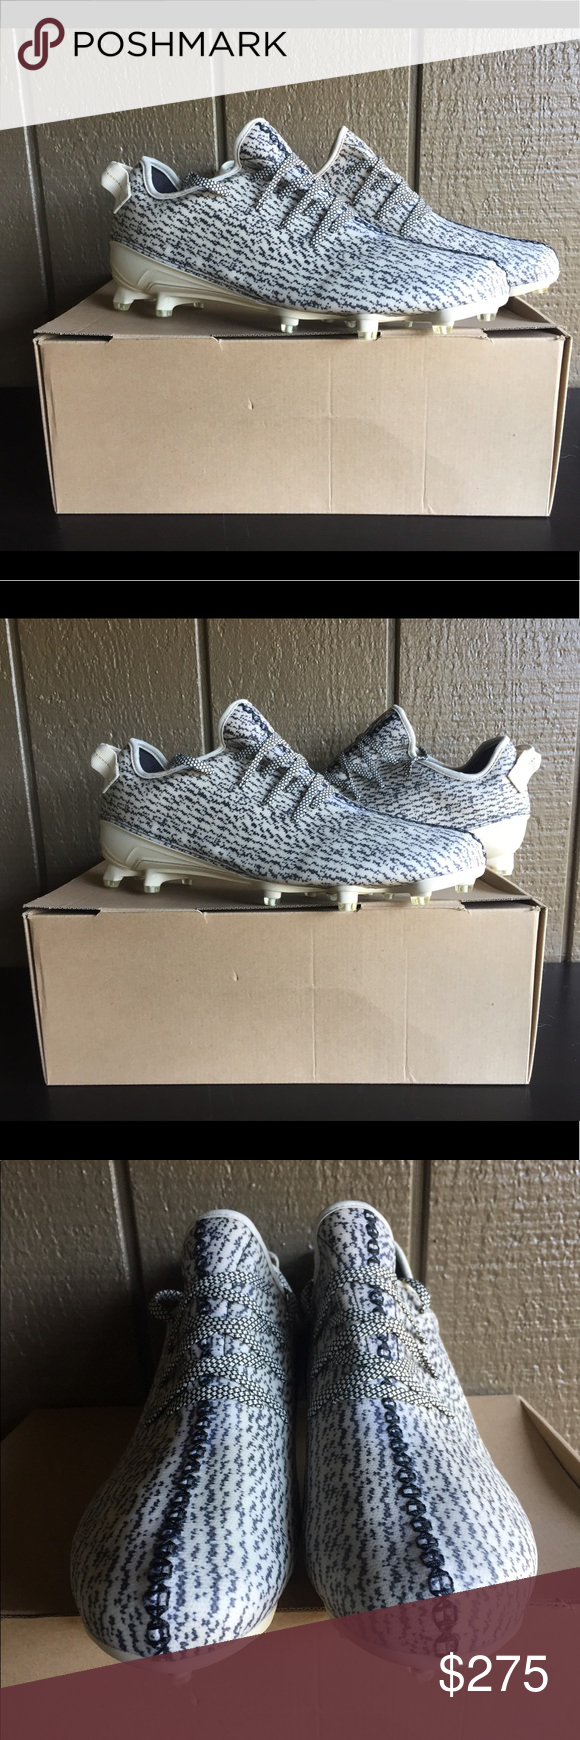 52f57838df880 Adidas Yeezy 350 Turtle Dove Mens Football Cleats Brand   Adidas Style Code    B42410 Color   White Black 100% AUTHENTIC The adidas Yeezy 350 Cleat  debuted ...